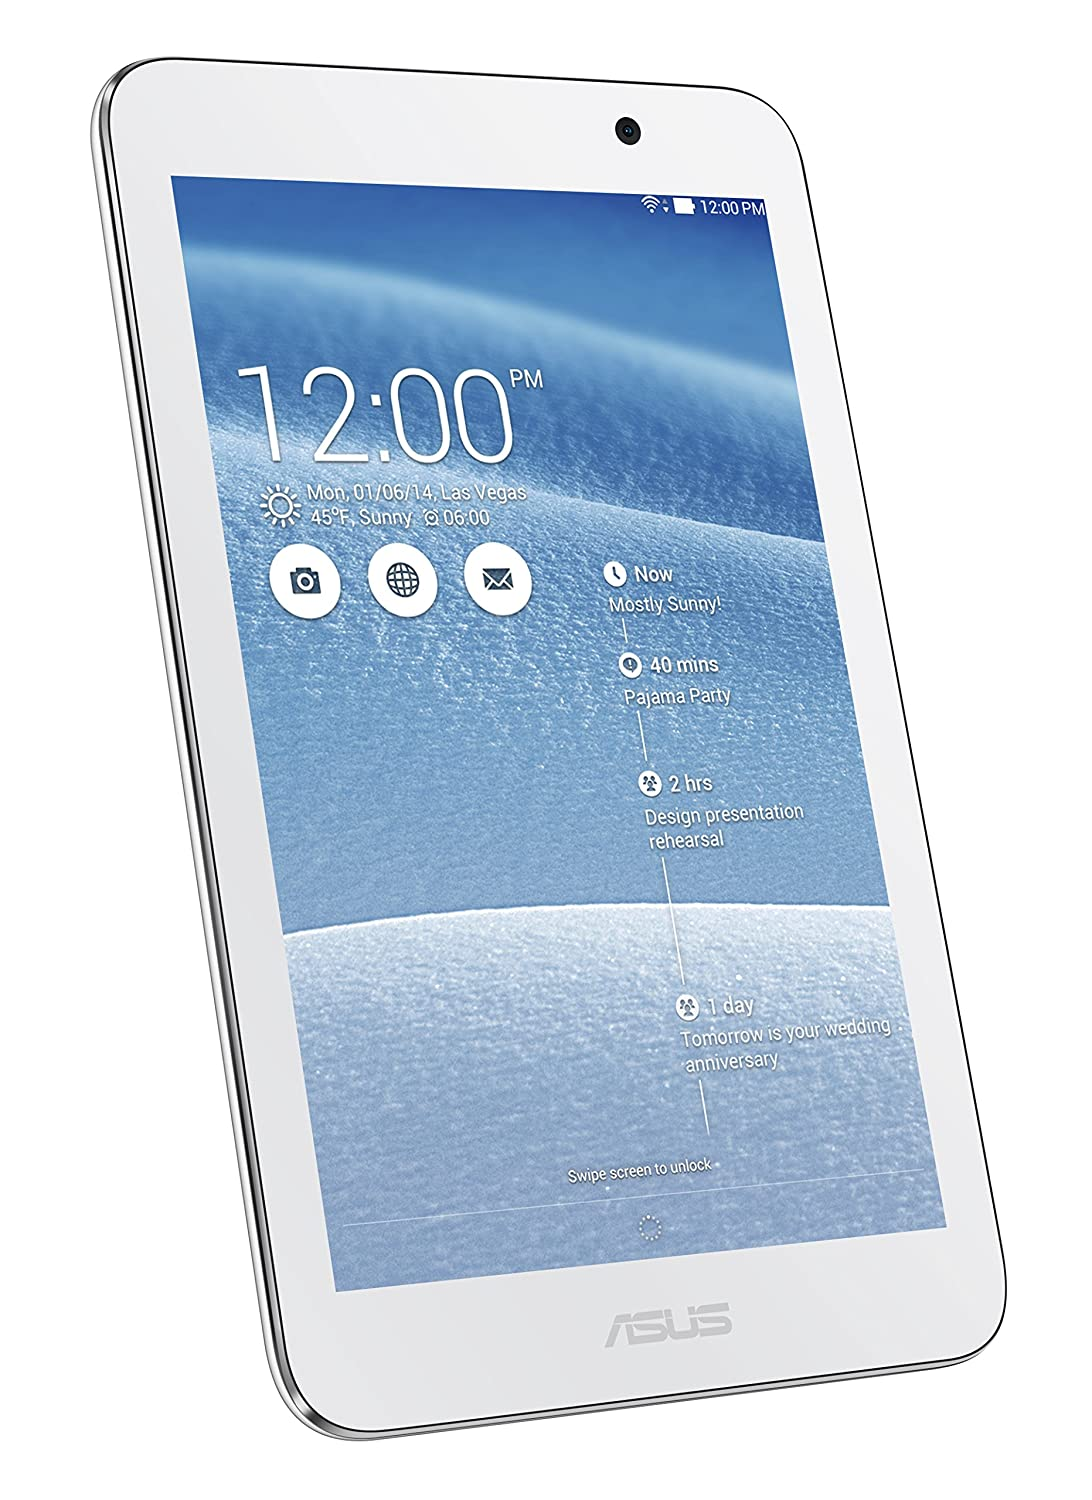 Asus Memo Pad 7 Me176cx A1 Wh 7 Inch Tablet White Asus Tablets And - Amazon com asus memo pad 7 me176cx a1 wh 7 inch tablet white computers accessories